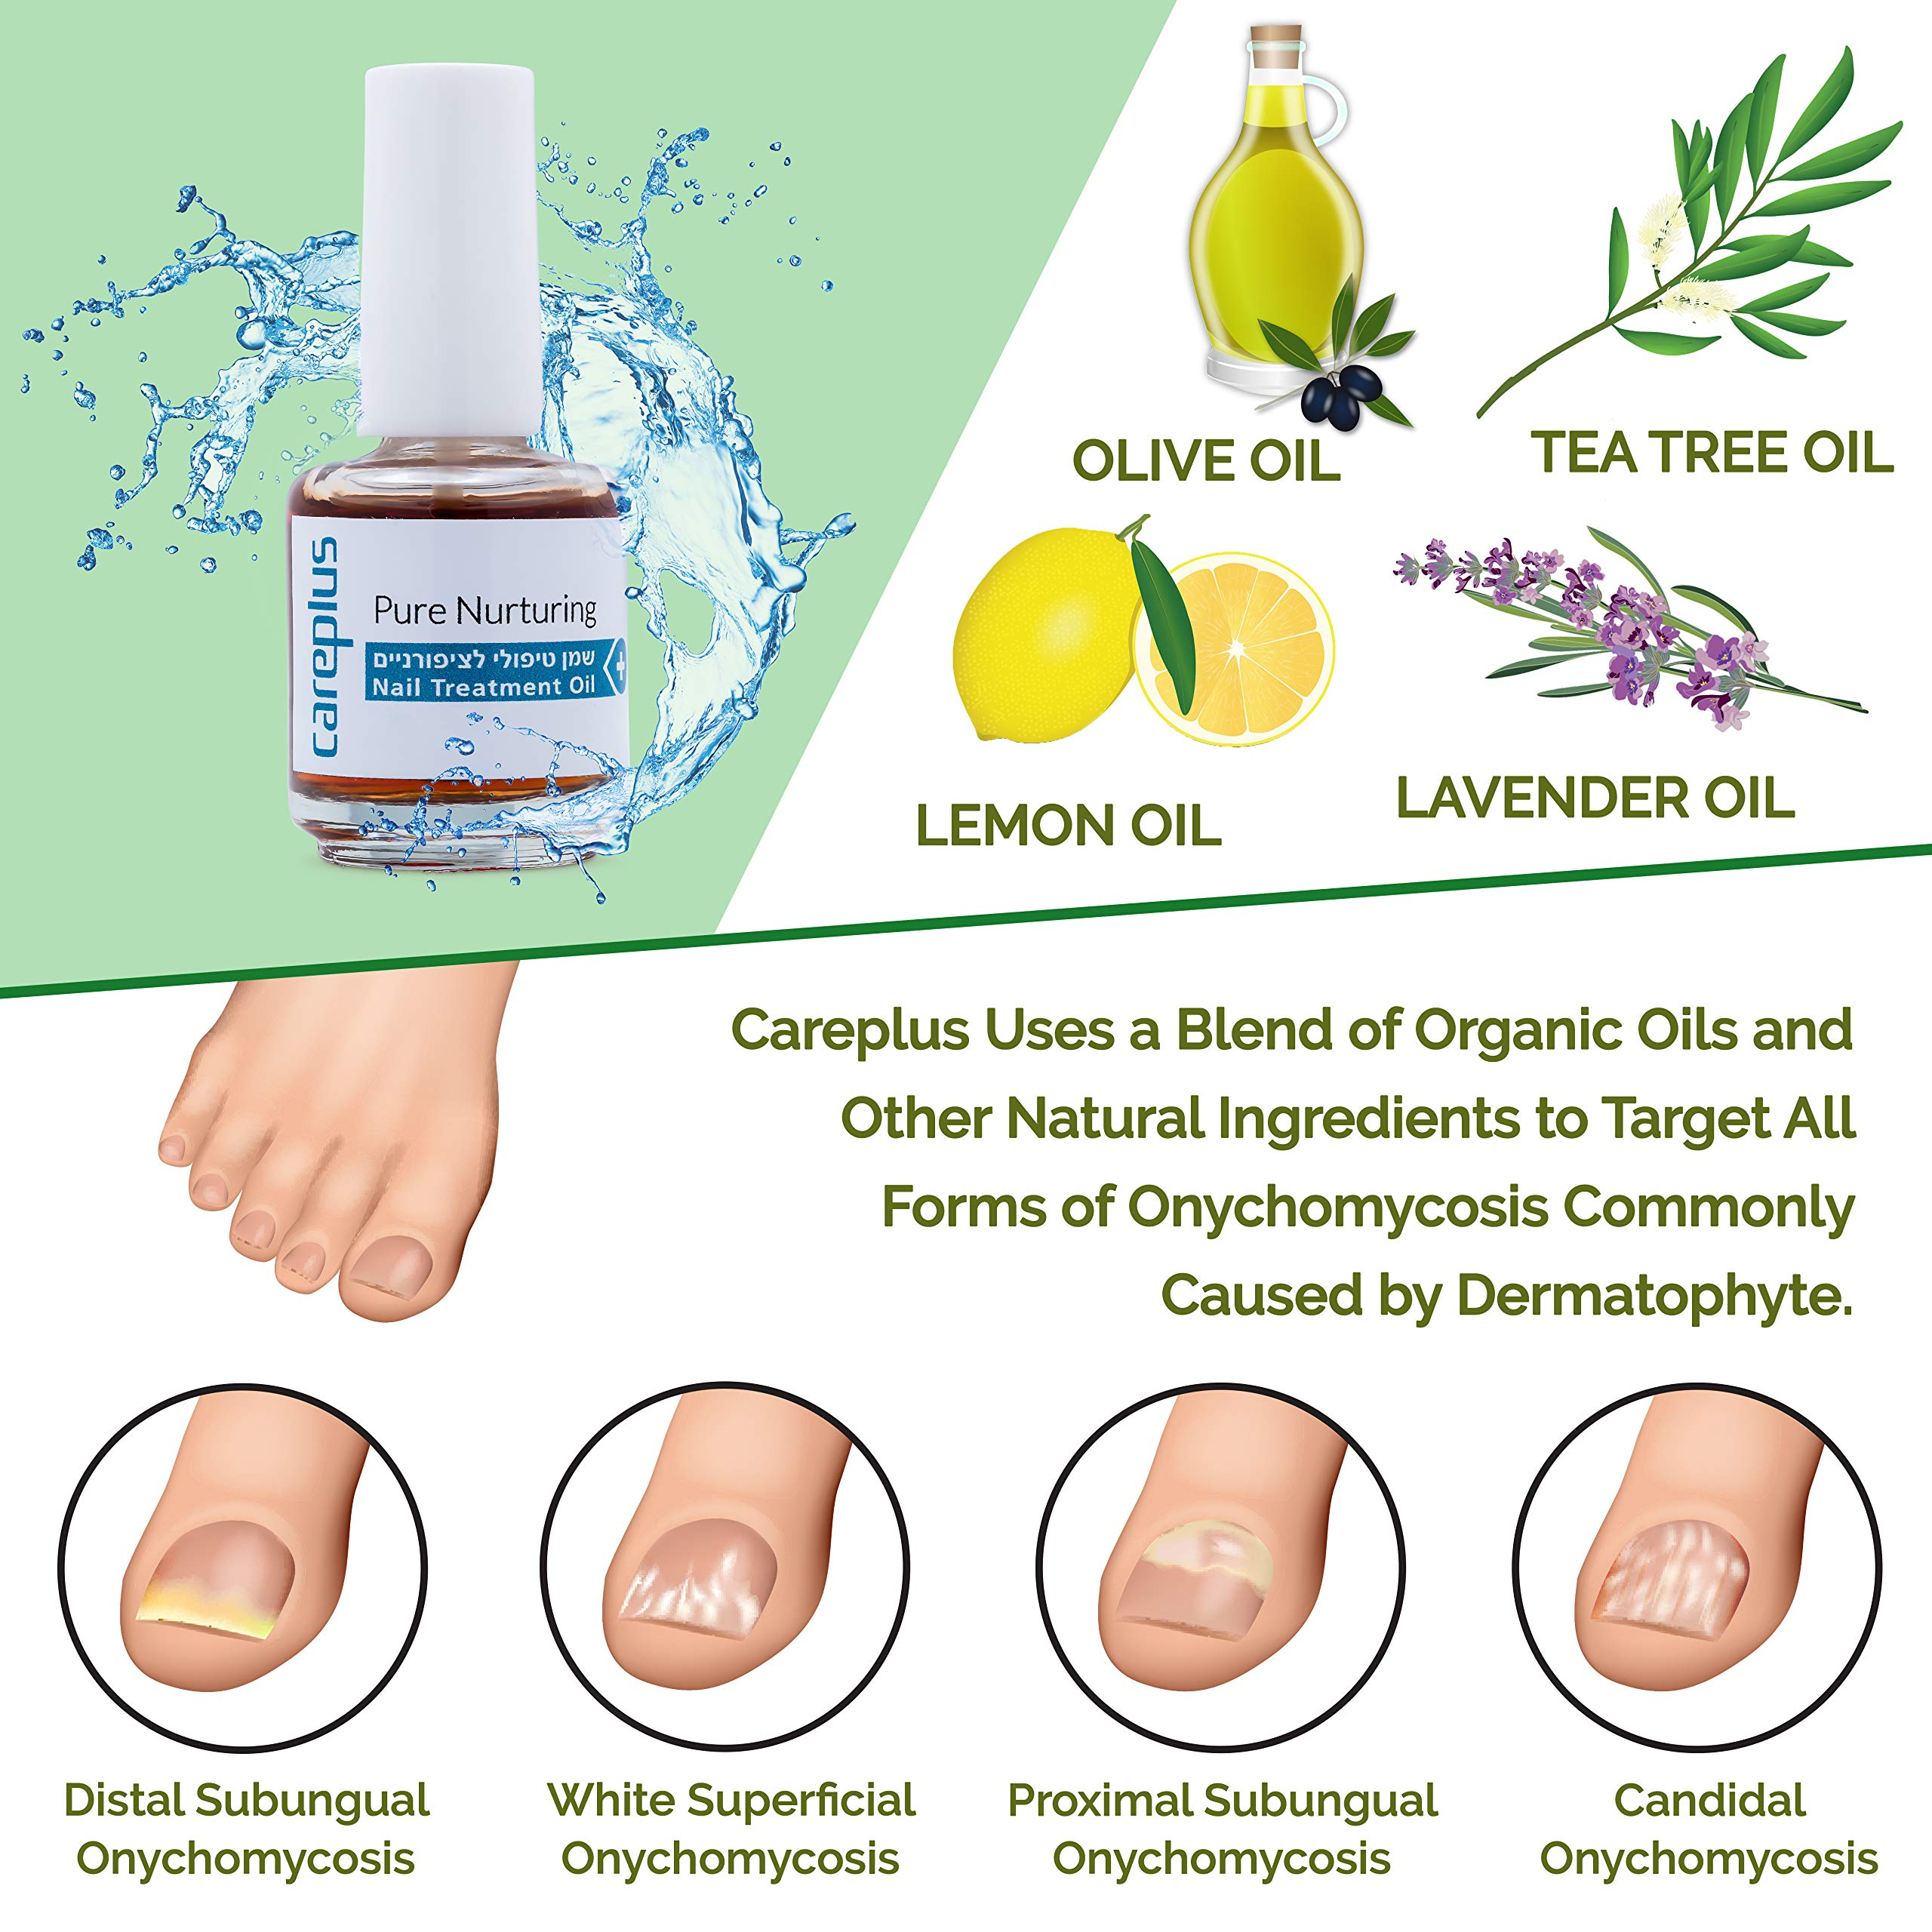 Careplus Fungus Cream Toenail Fungus Treatment - Completely Safe No Risk Made From All Natural Oils - Fungomat by Care Plus by Care Plus